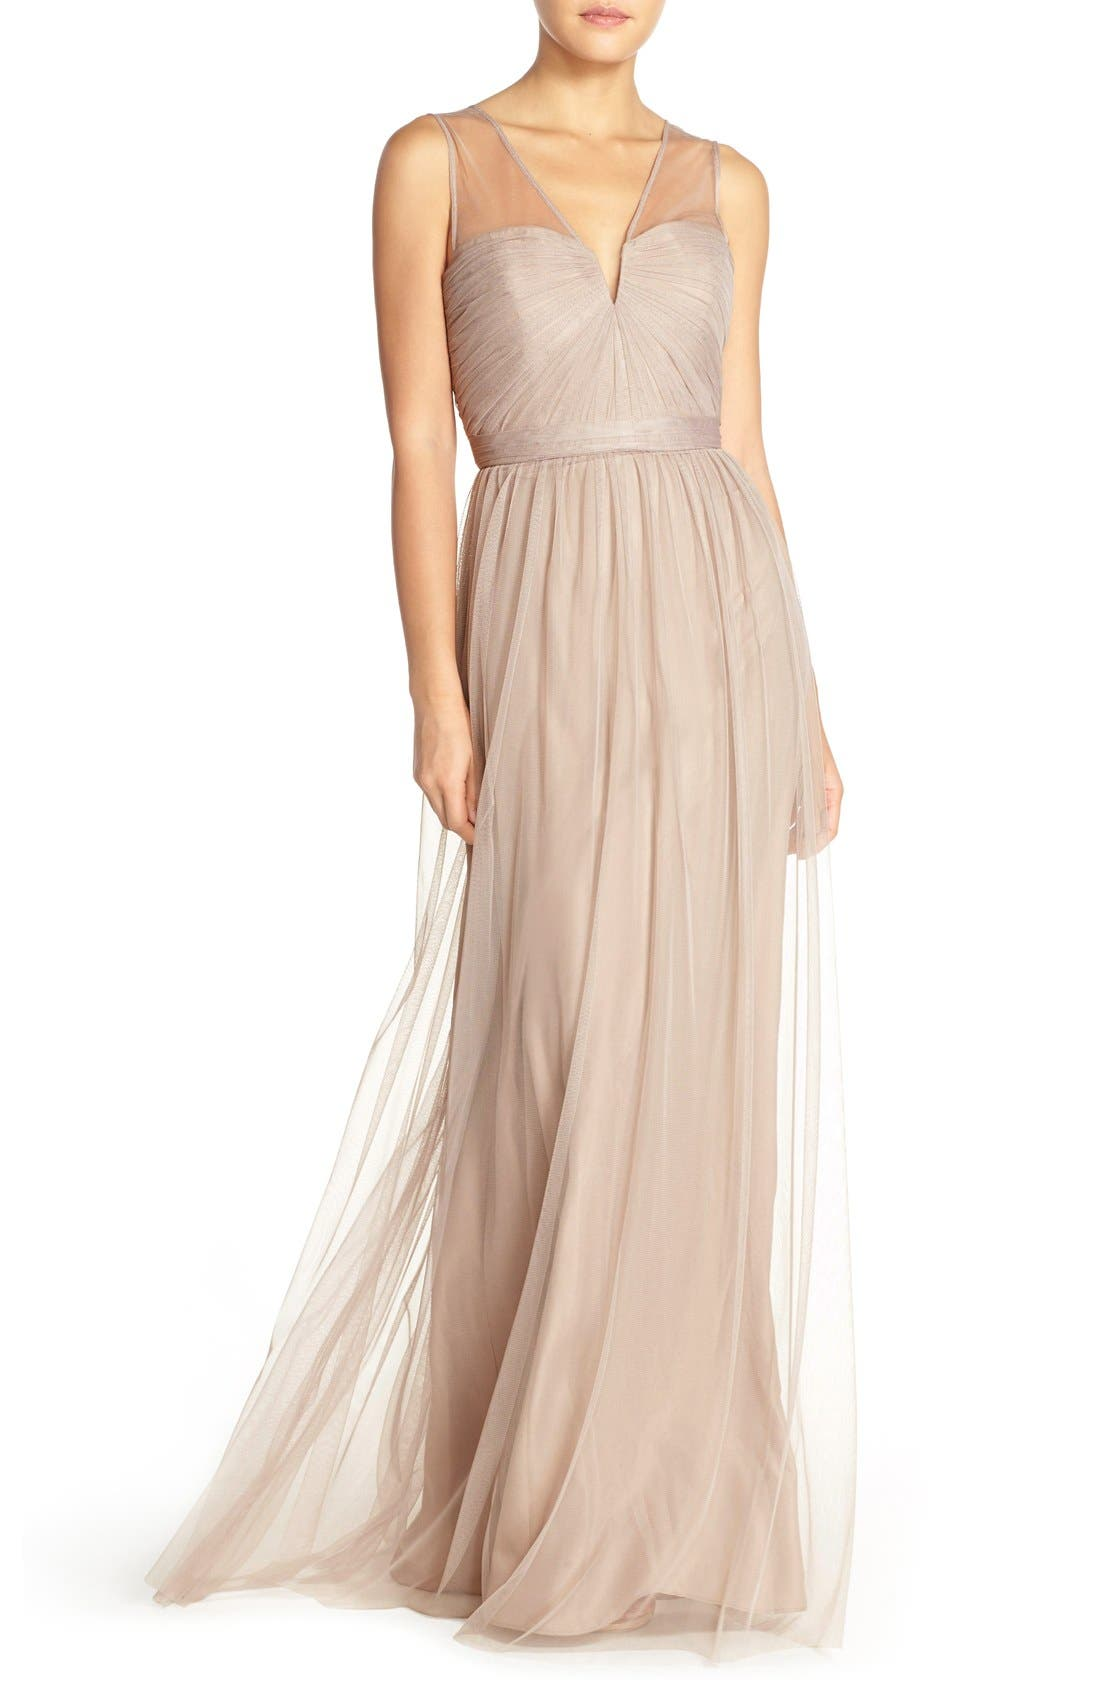 'Alyce' Illusion V-Neck Pleat Tulle Gown,                         Main,                         color, Latte